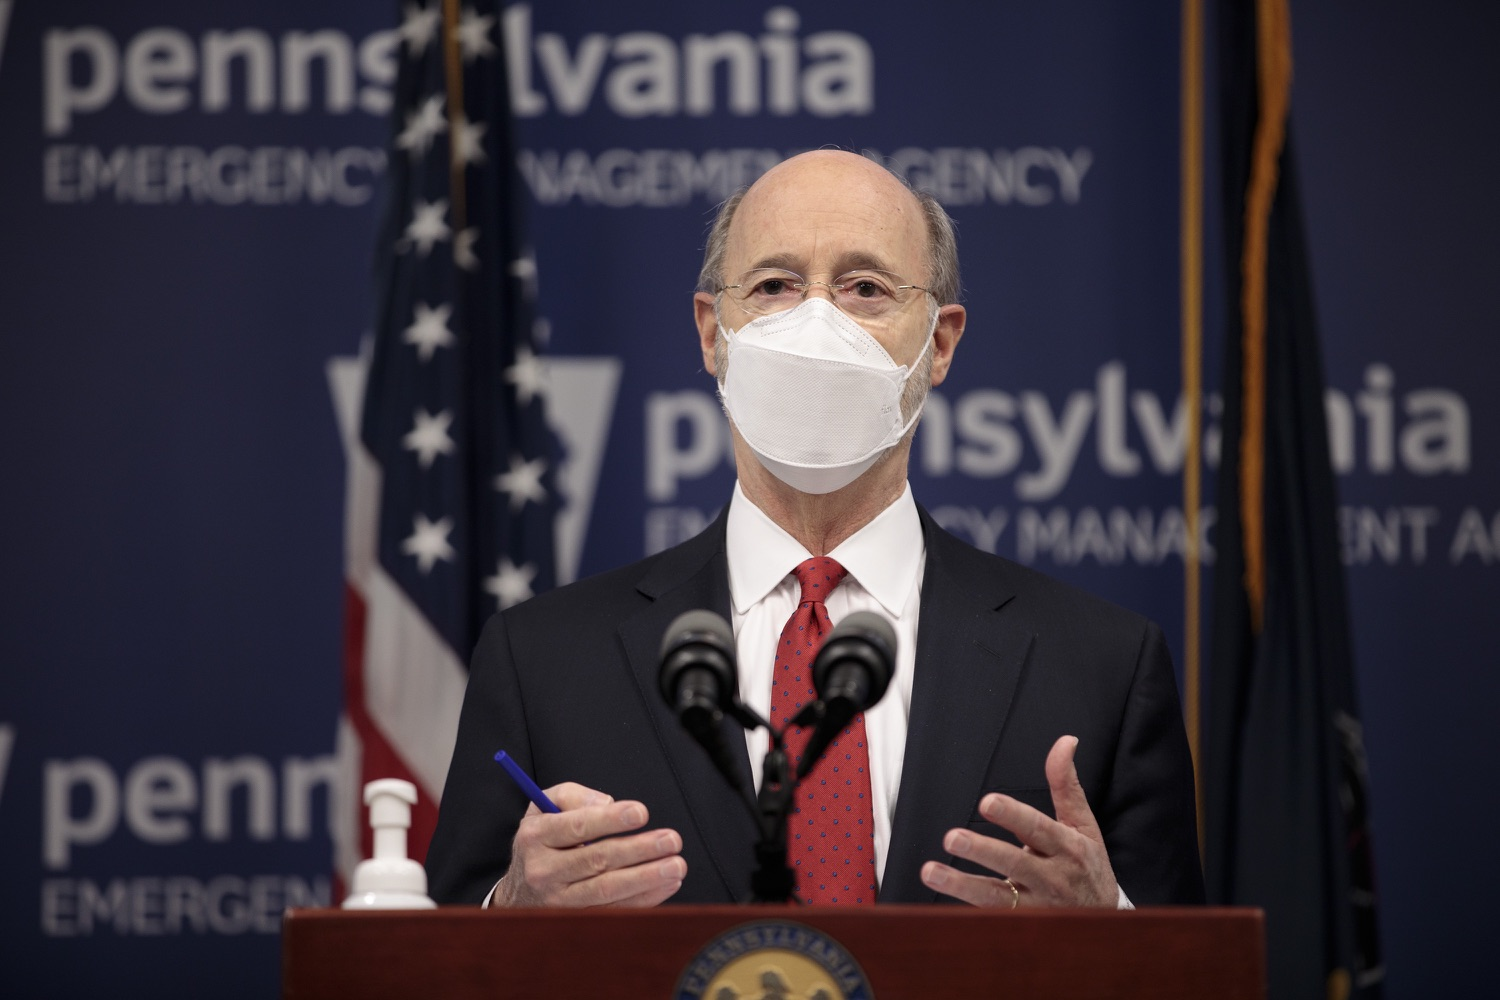 "<a href=""https://filesource.wostreaming.net/commonwealthofpa/photo/18540_gov_backtowork_dz_08.jpg"" target=""_blank"">⇣ Download Photo<br></a>Pennsylvania Governor Tom Wolf speaking at the press conference. The COVID-19 global pandemic has significantly affected Pennsylvania workers, businesses and communities. To bolster economic recovery efforts and position Pennsylvania for economic growth, Governor Tom Wolf today unveiled his Back to Work PA plan.   Harrisburg, PA  February 22, 2021"